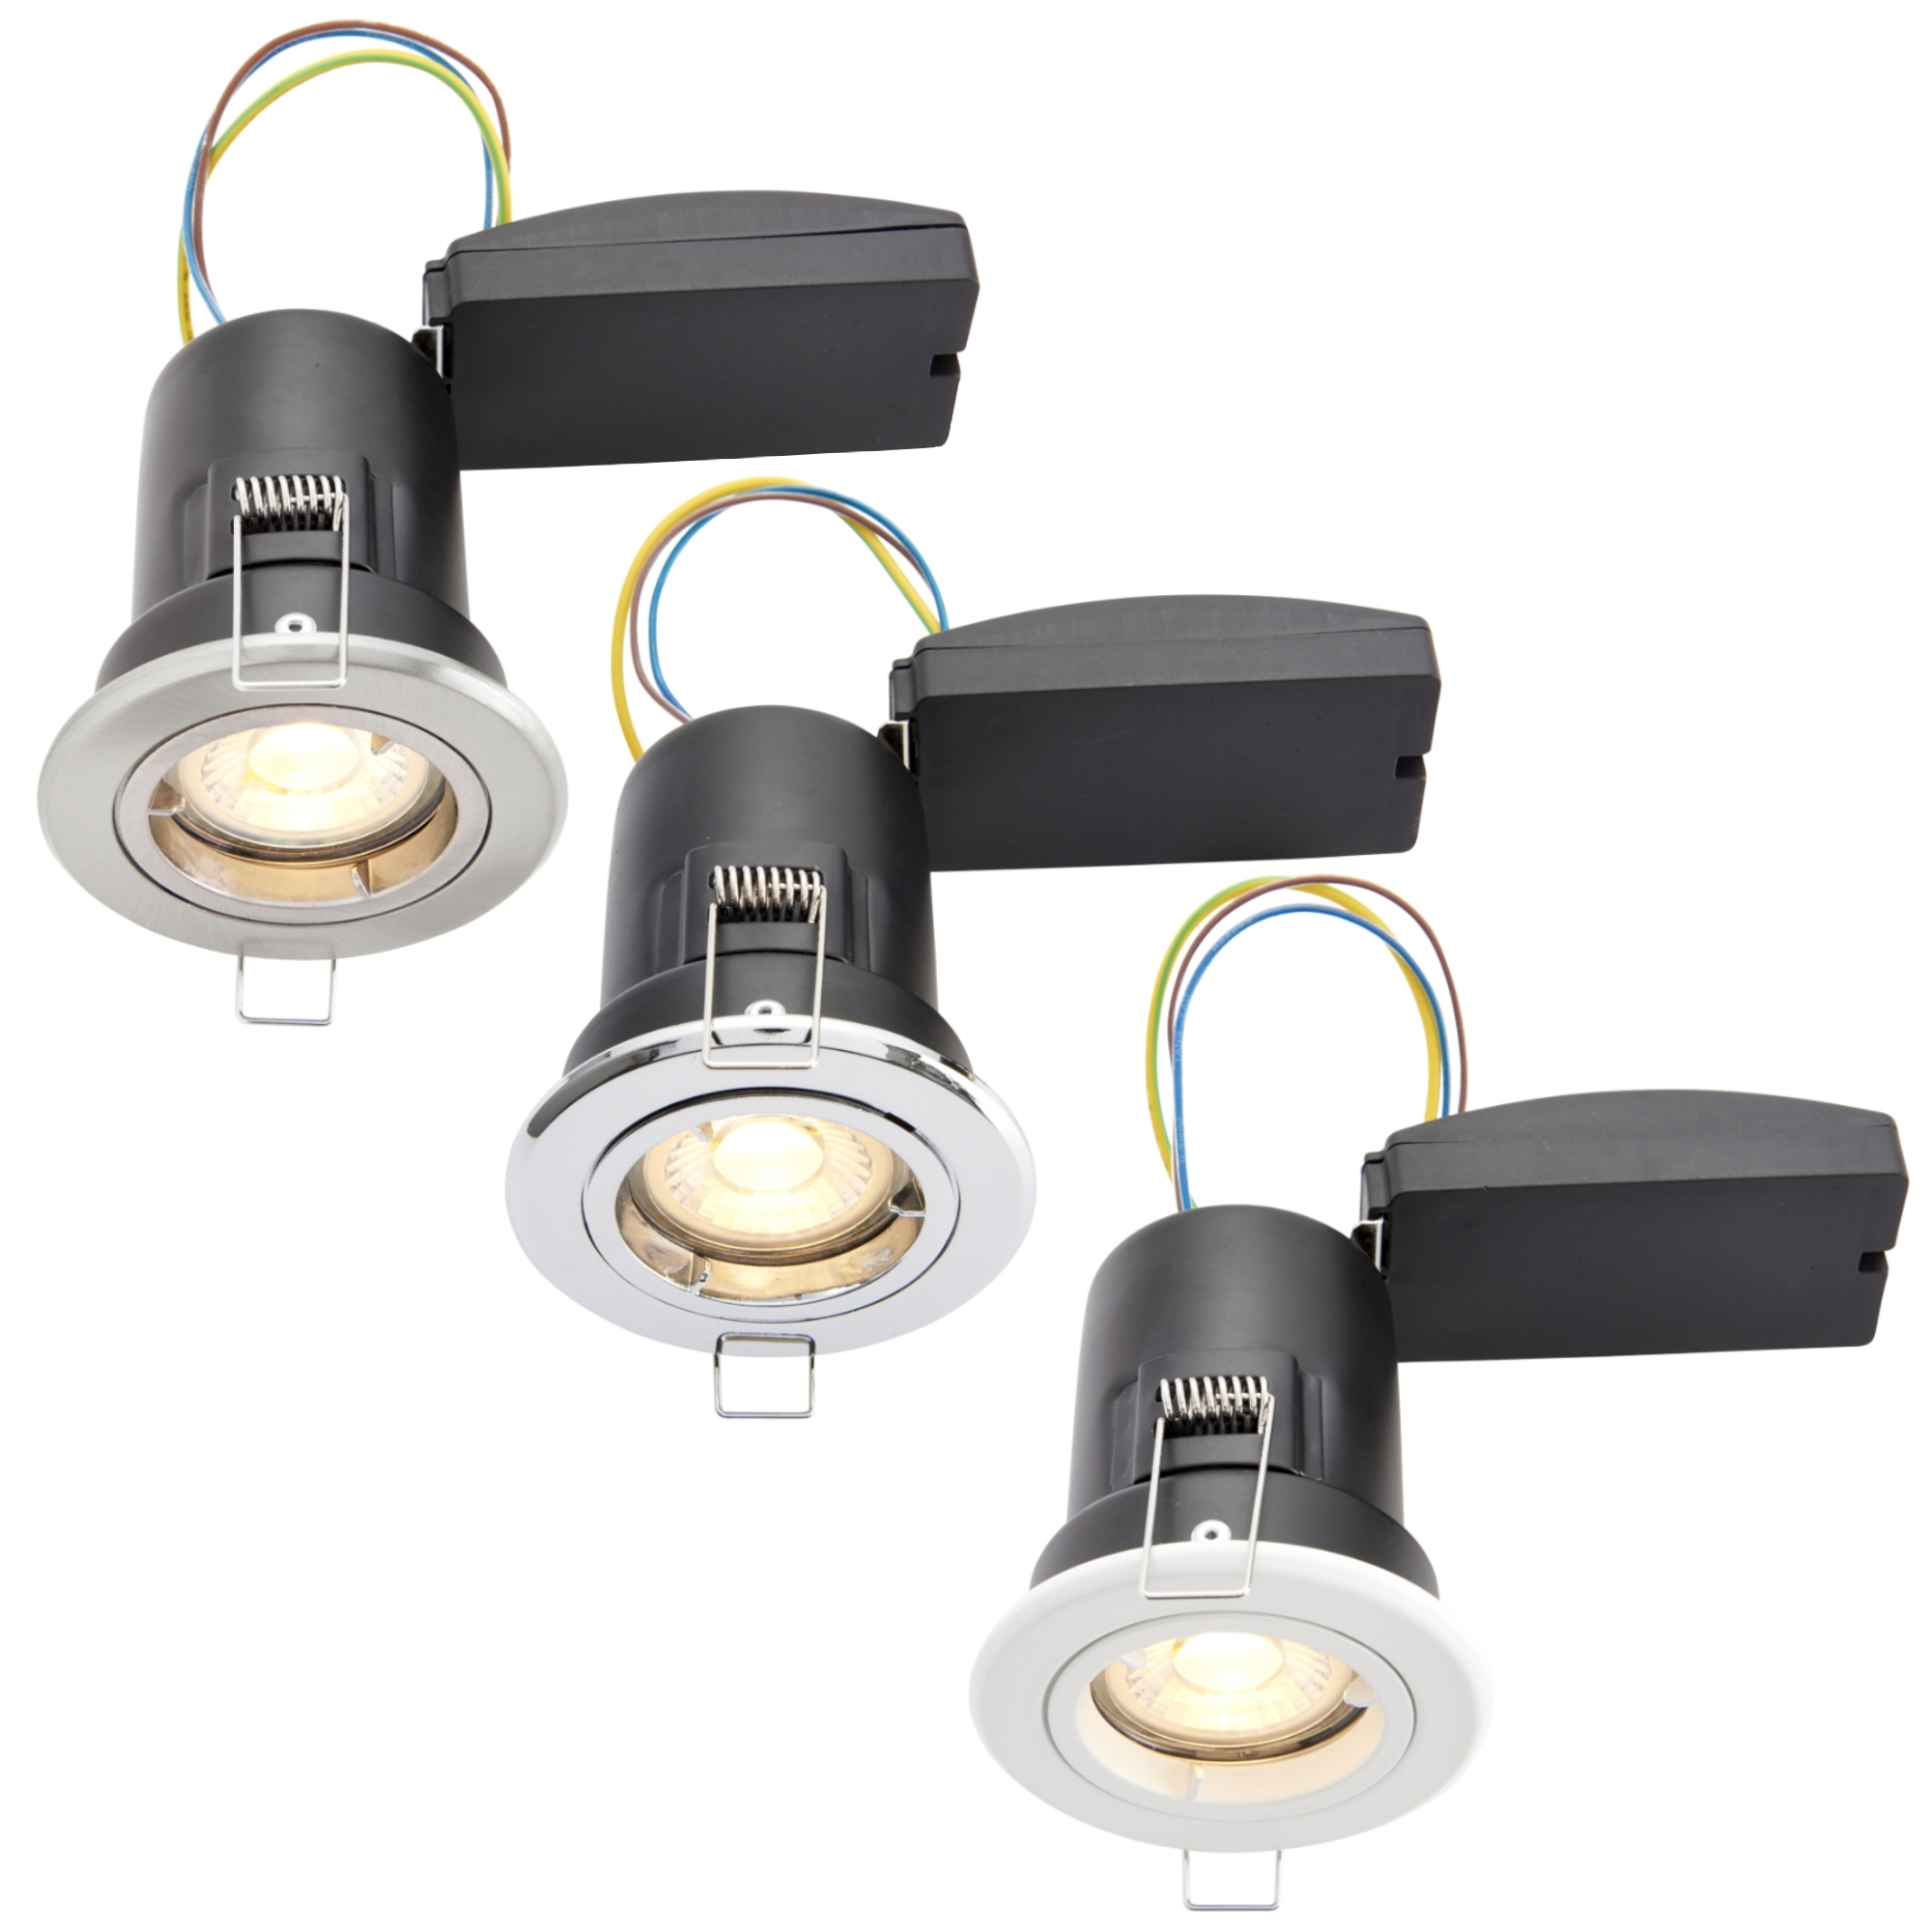 20 Aurora Enlite Fire Rated GU10 Downlight complete with LED Lamps FREE POSTAGE